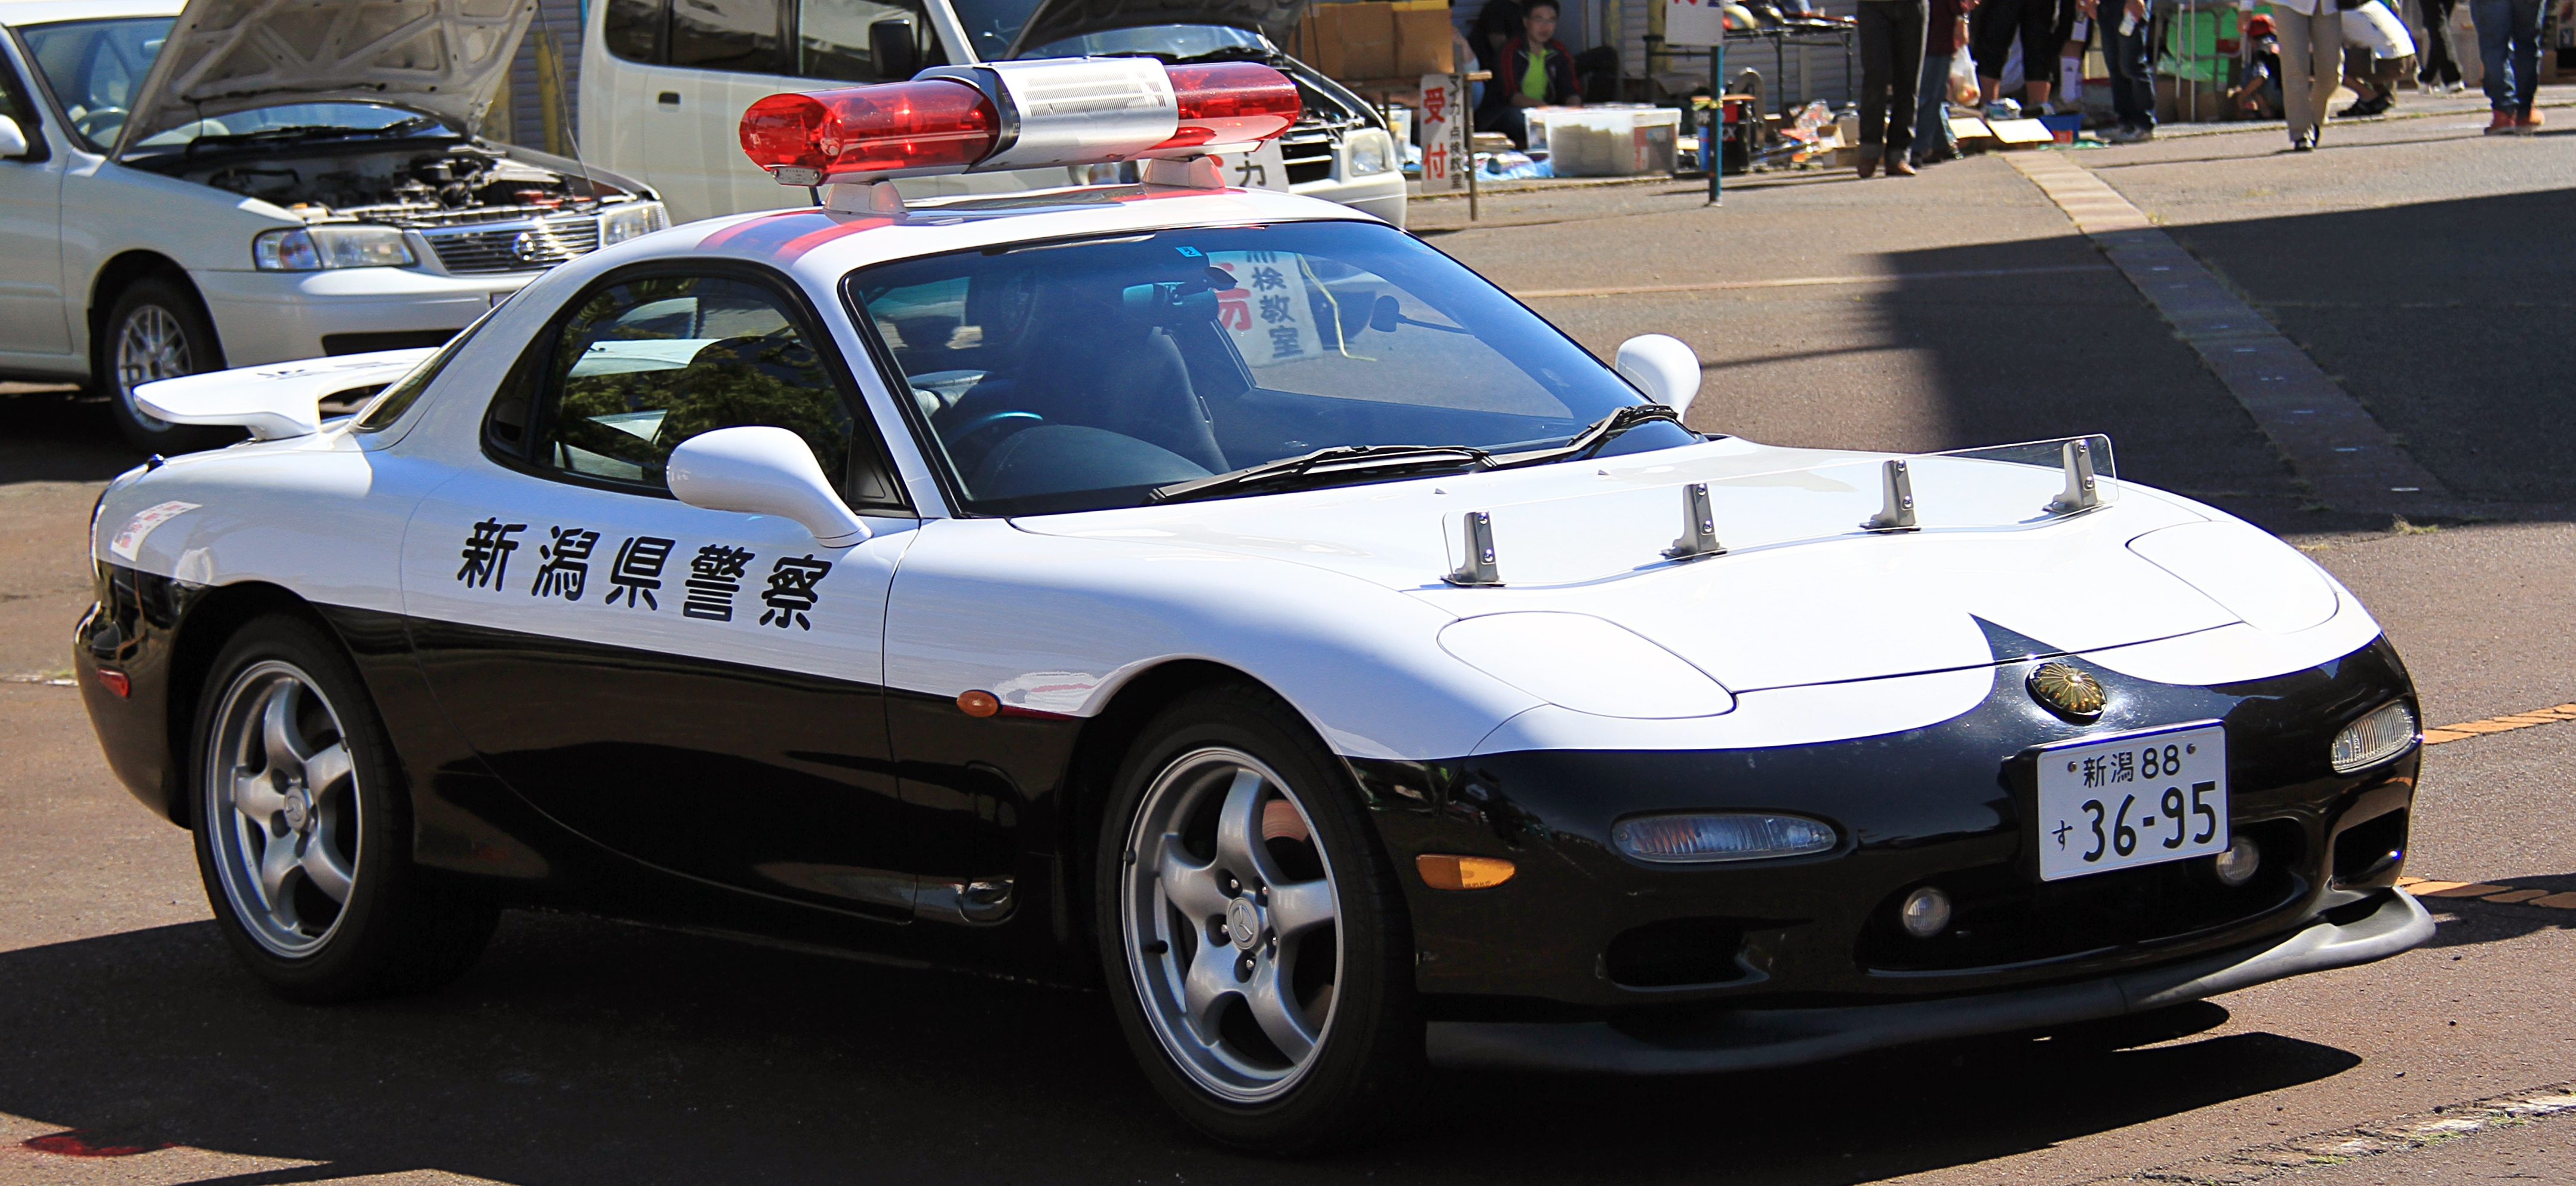 Pictures Of Mazda Cars >> File:Mazda RX-7 police car of Niigata Prefecture Police.jpg - Wikimedia Commons